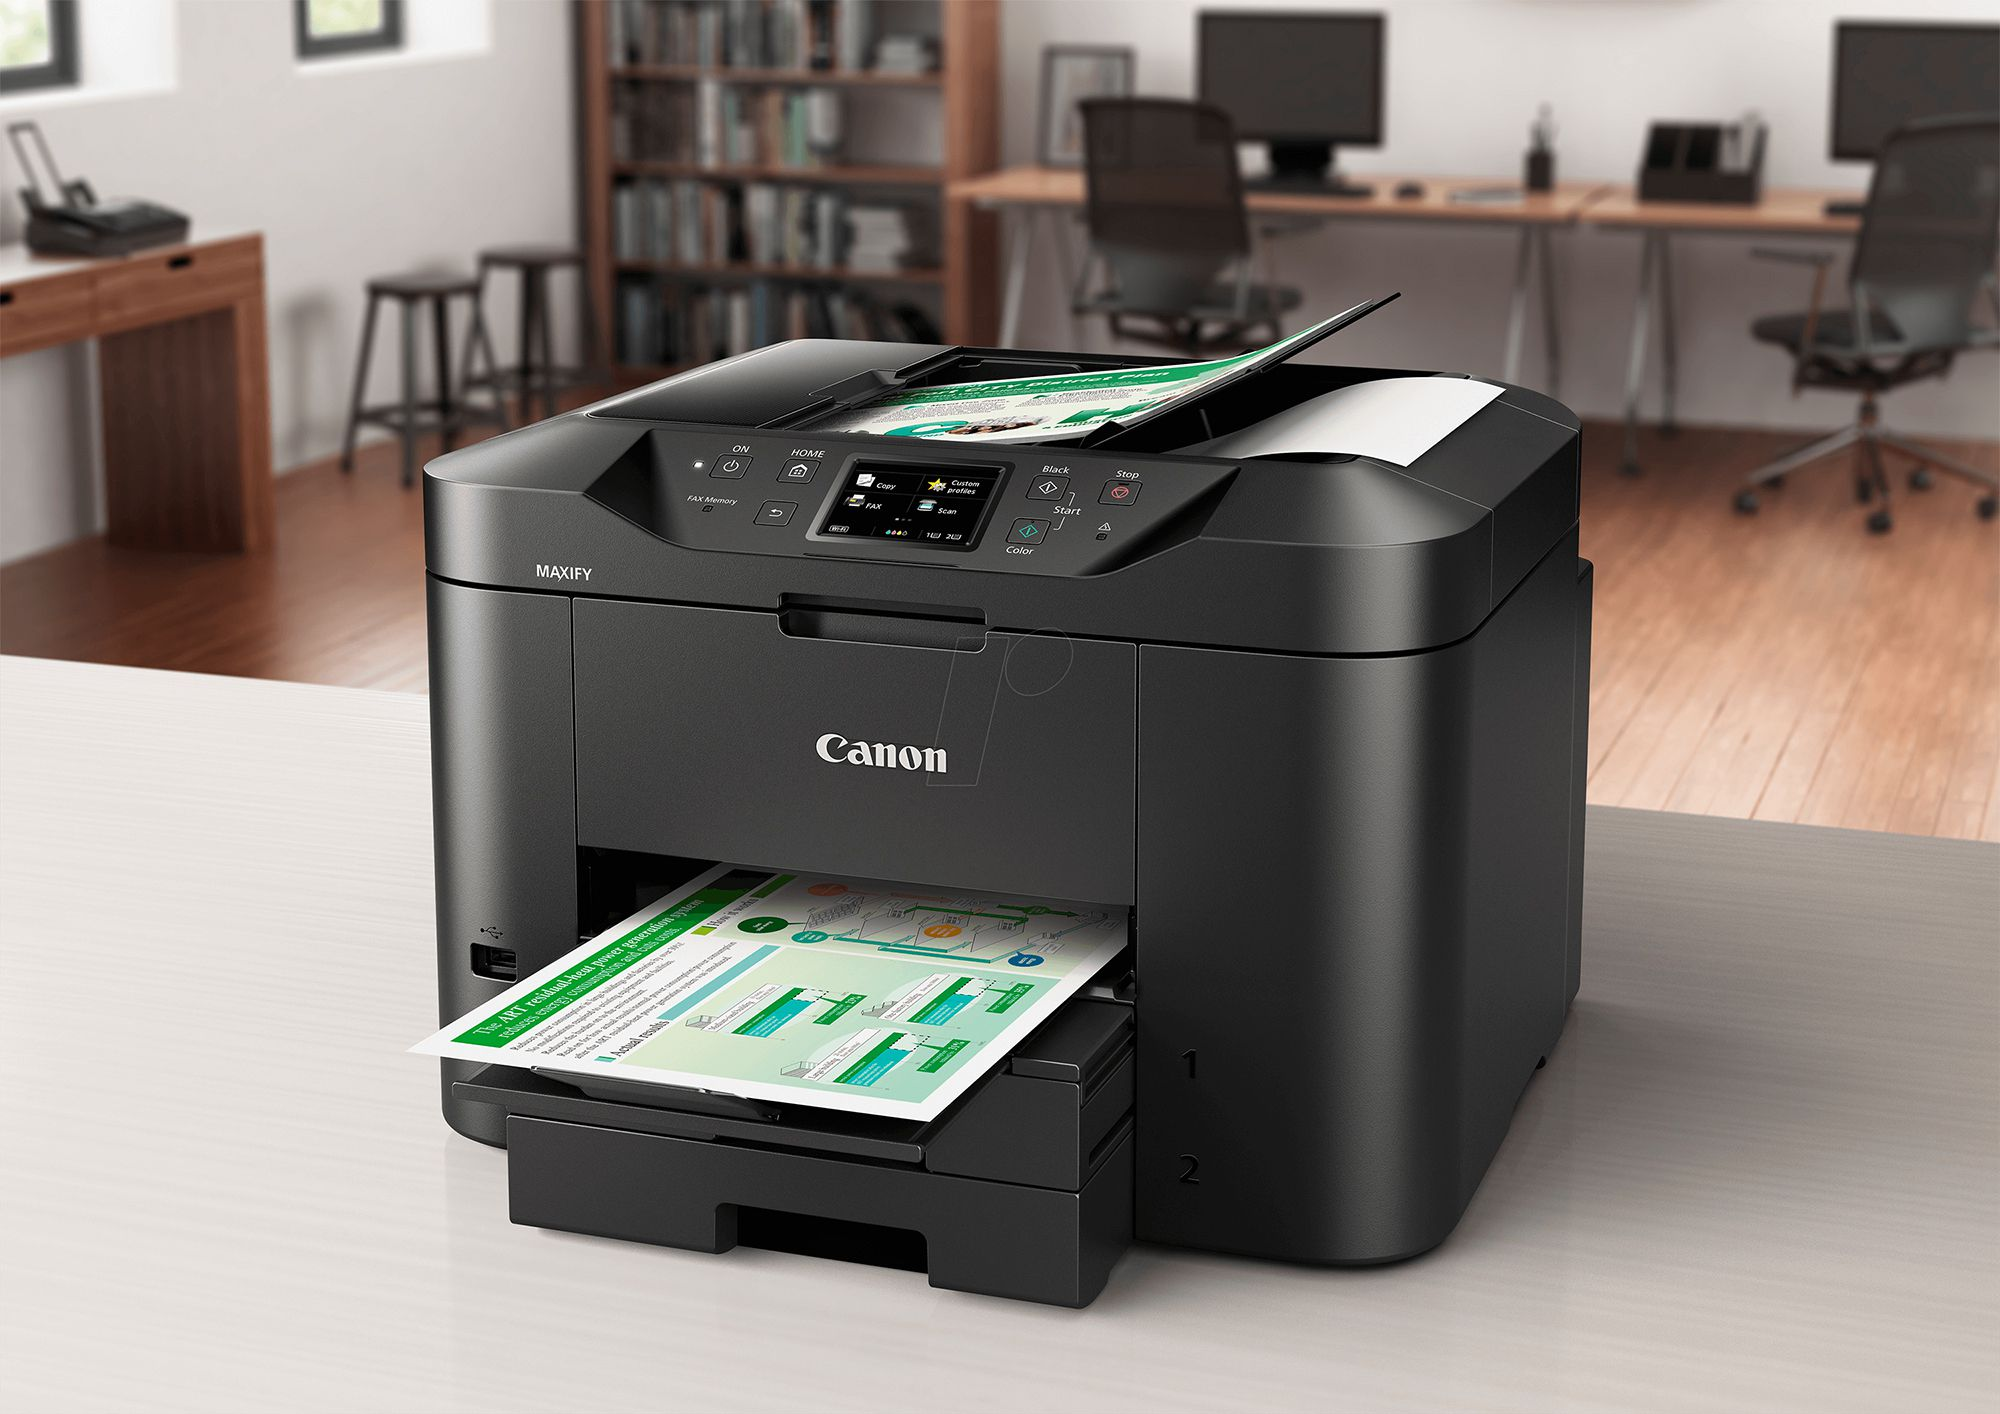 canon maxify mb2720 home office printer for your home based business